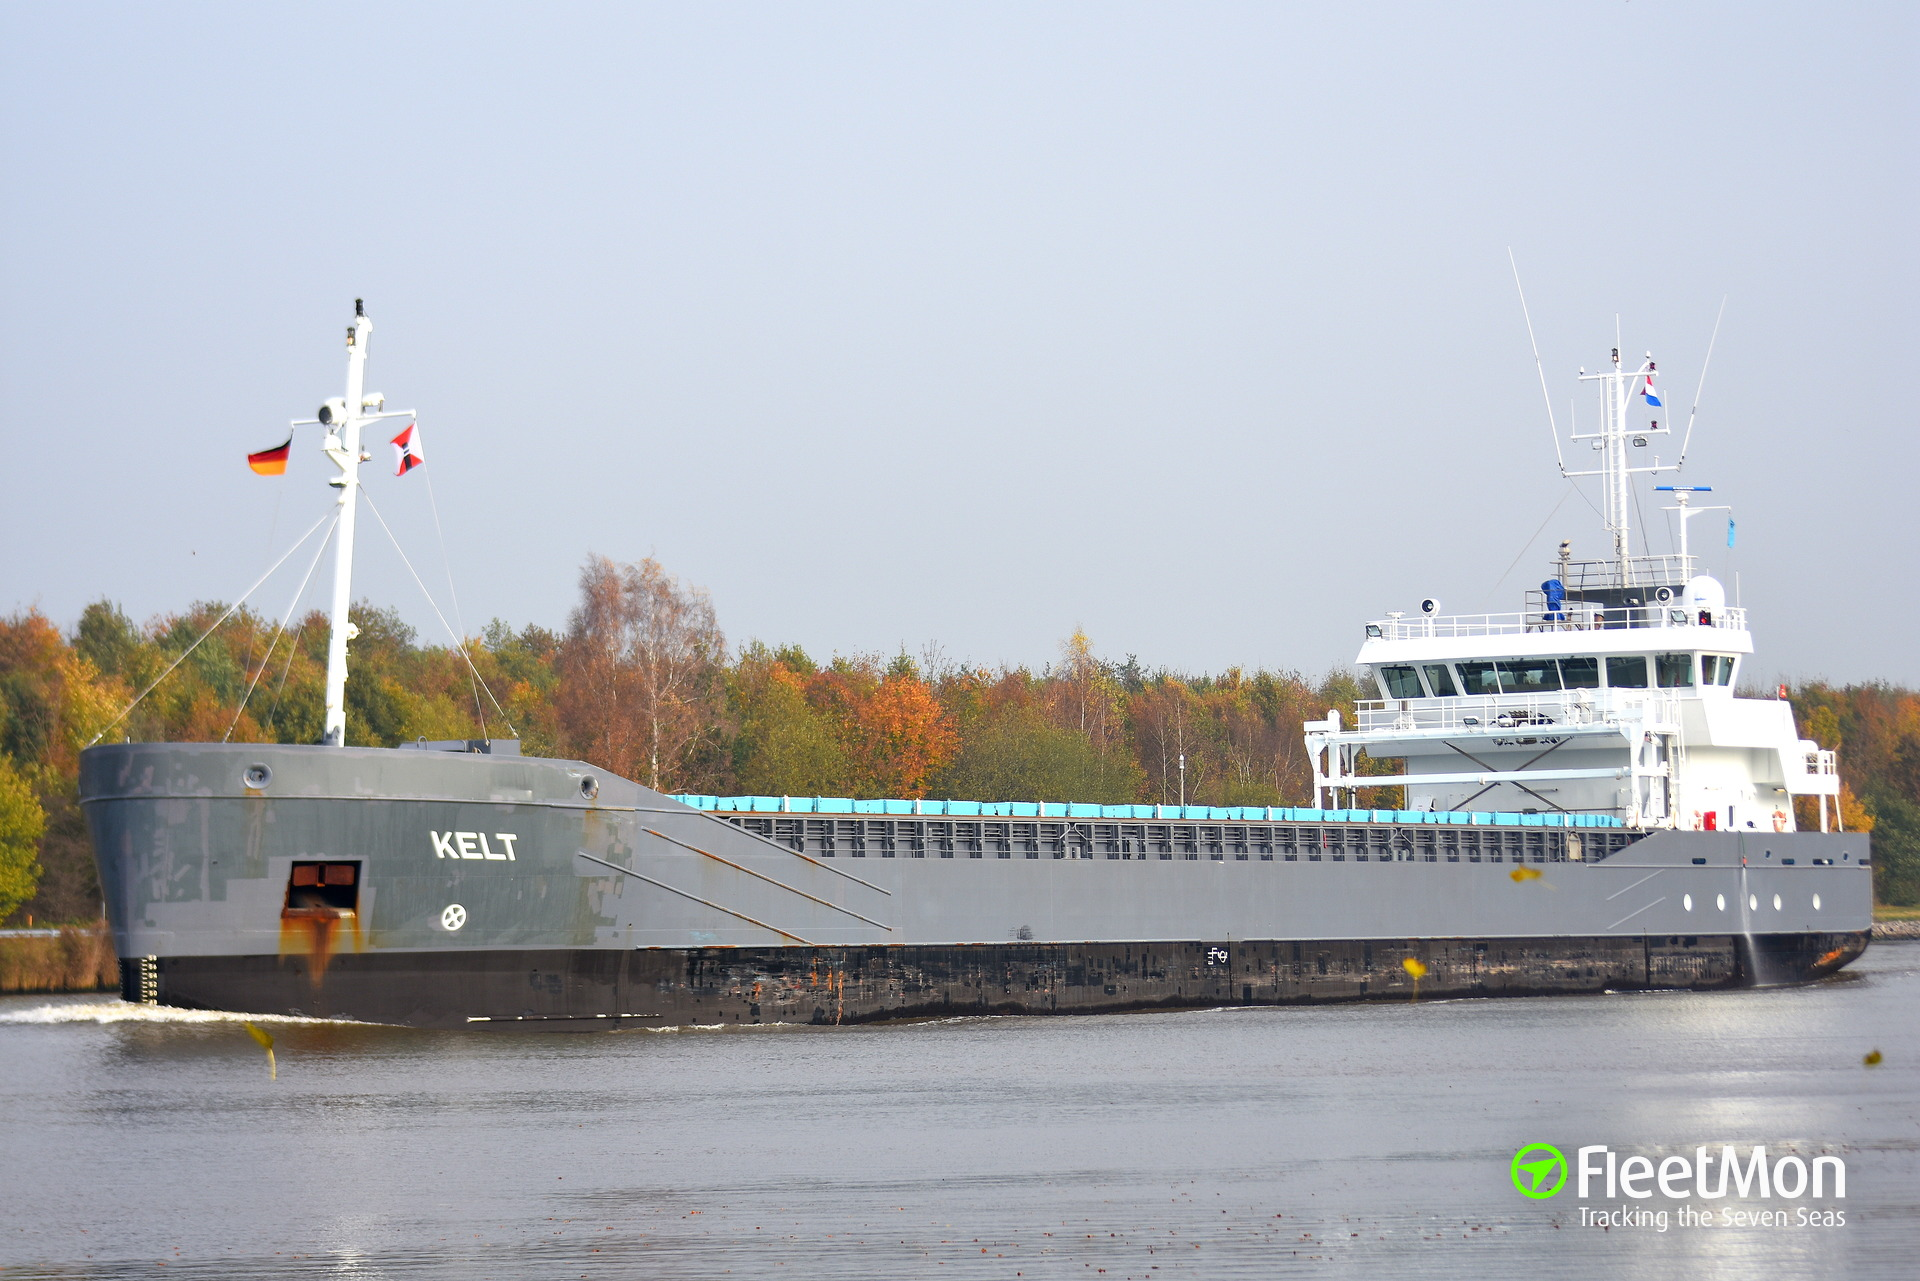 General cargo vessel Kelt towed to Delfzijl